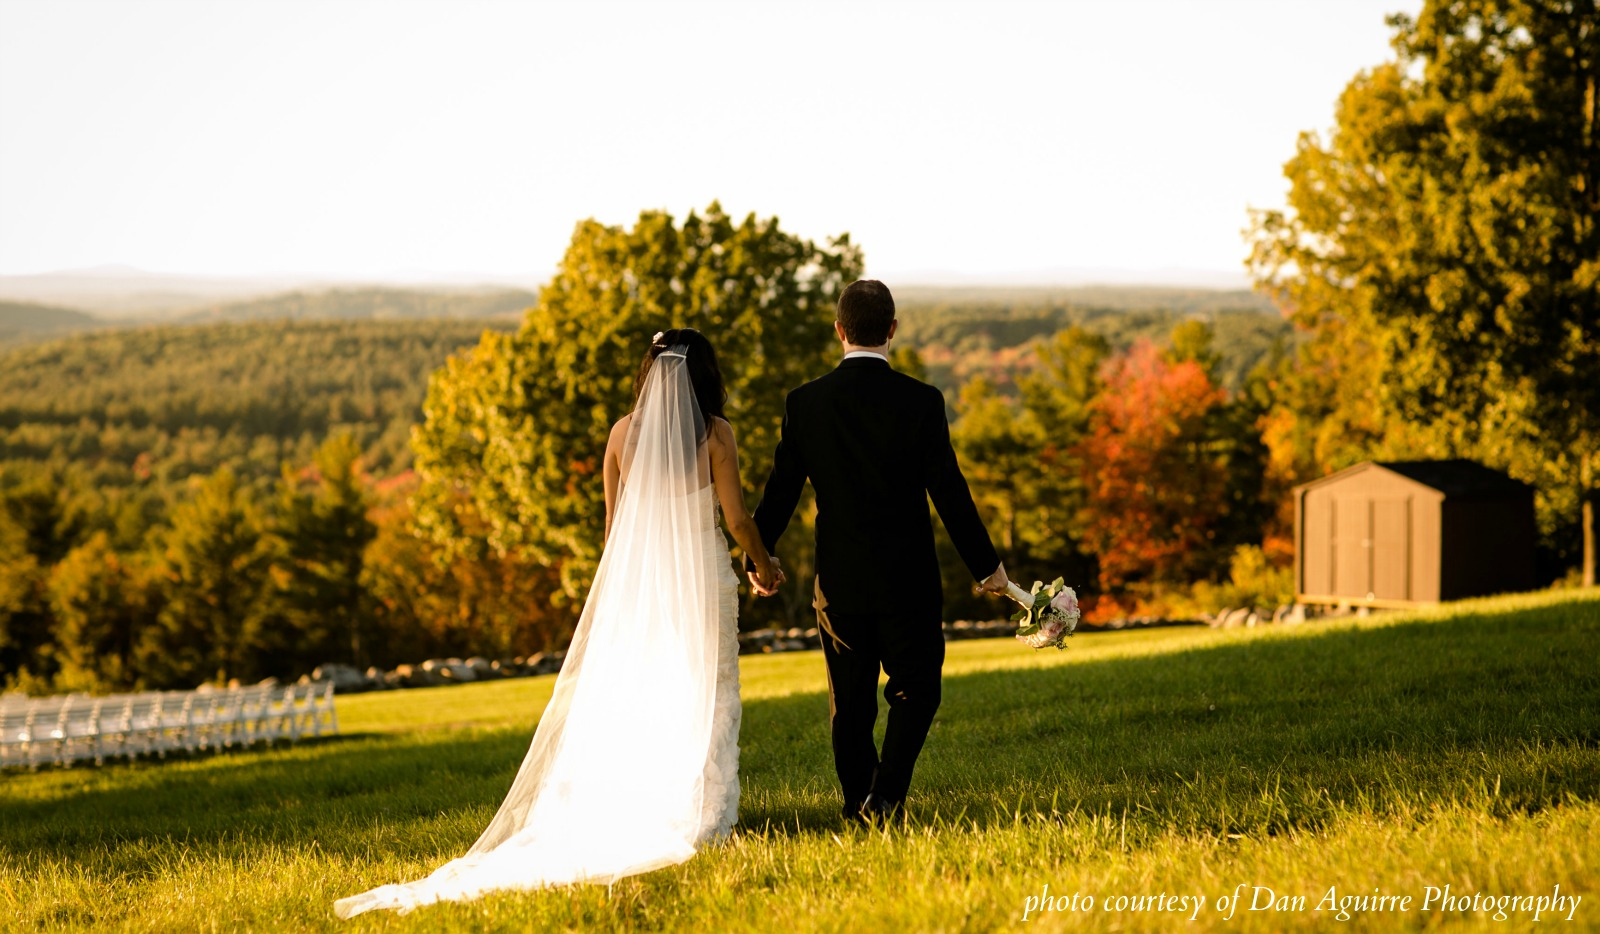 Bride and groom walking along lawn with view of mountains and valley in background